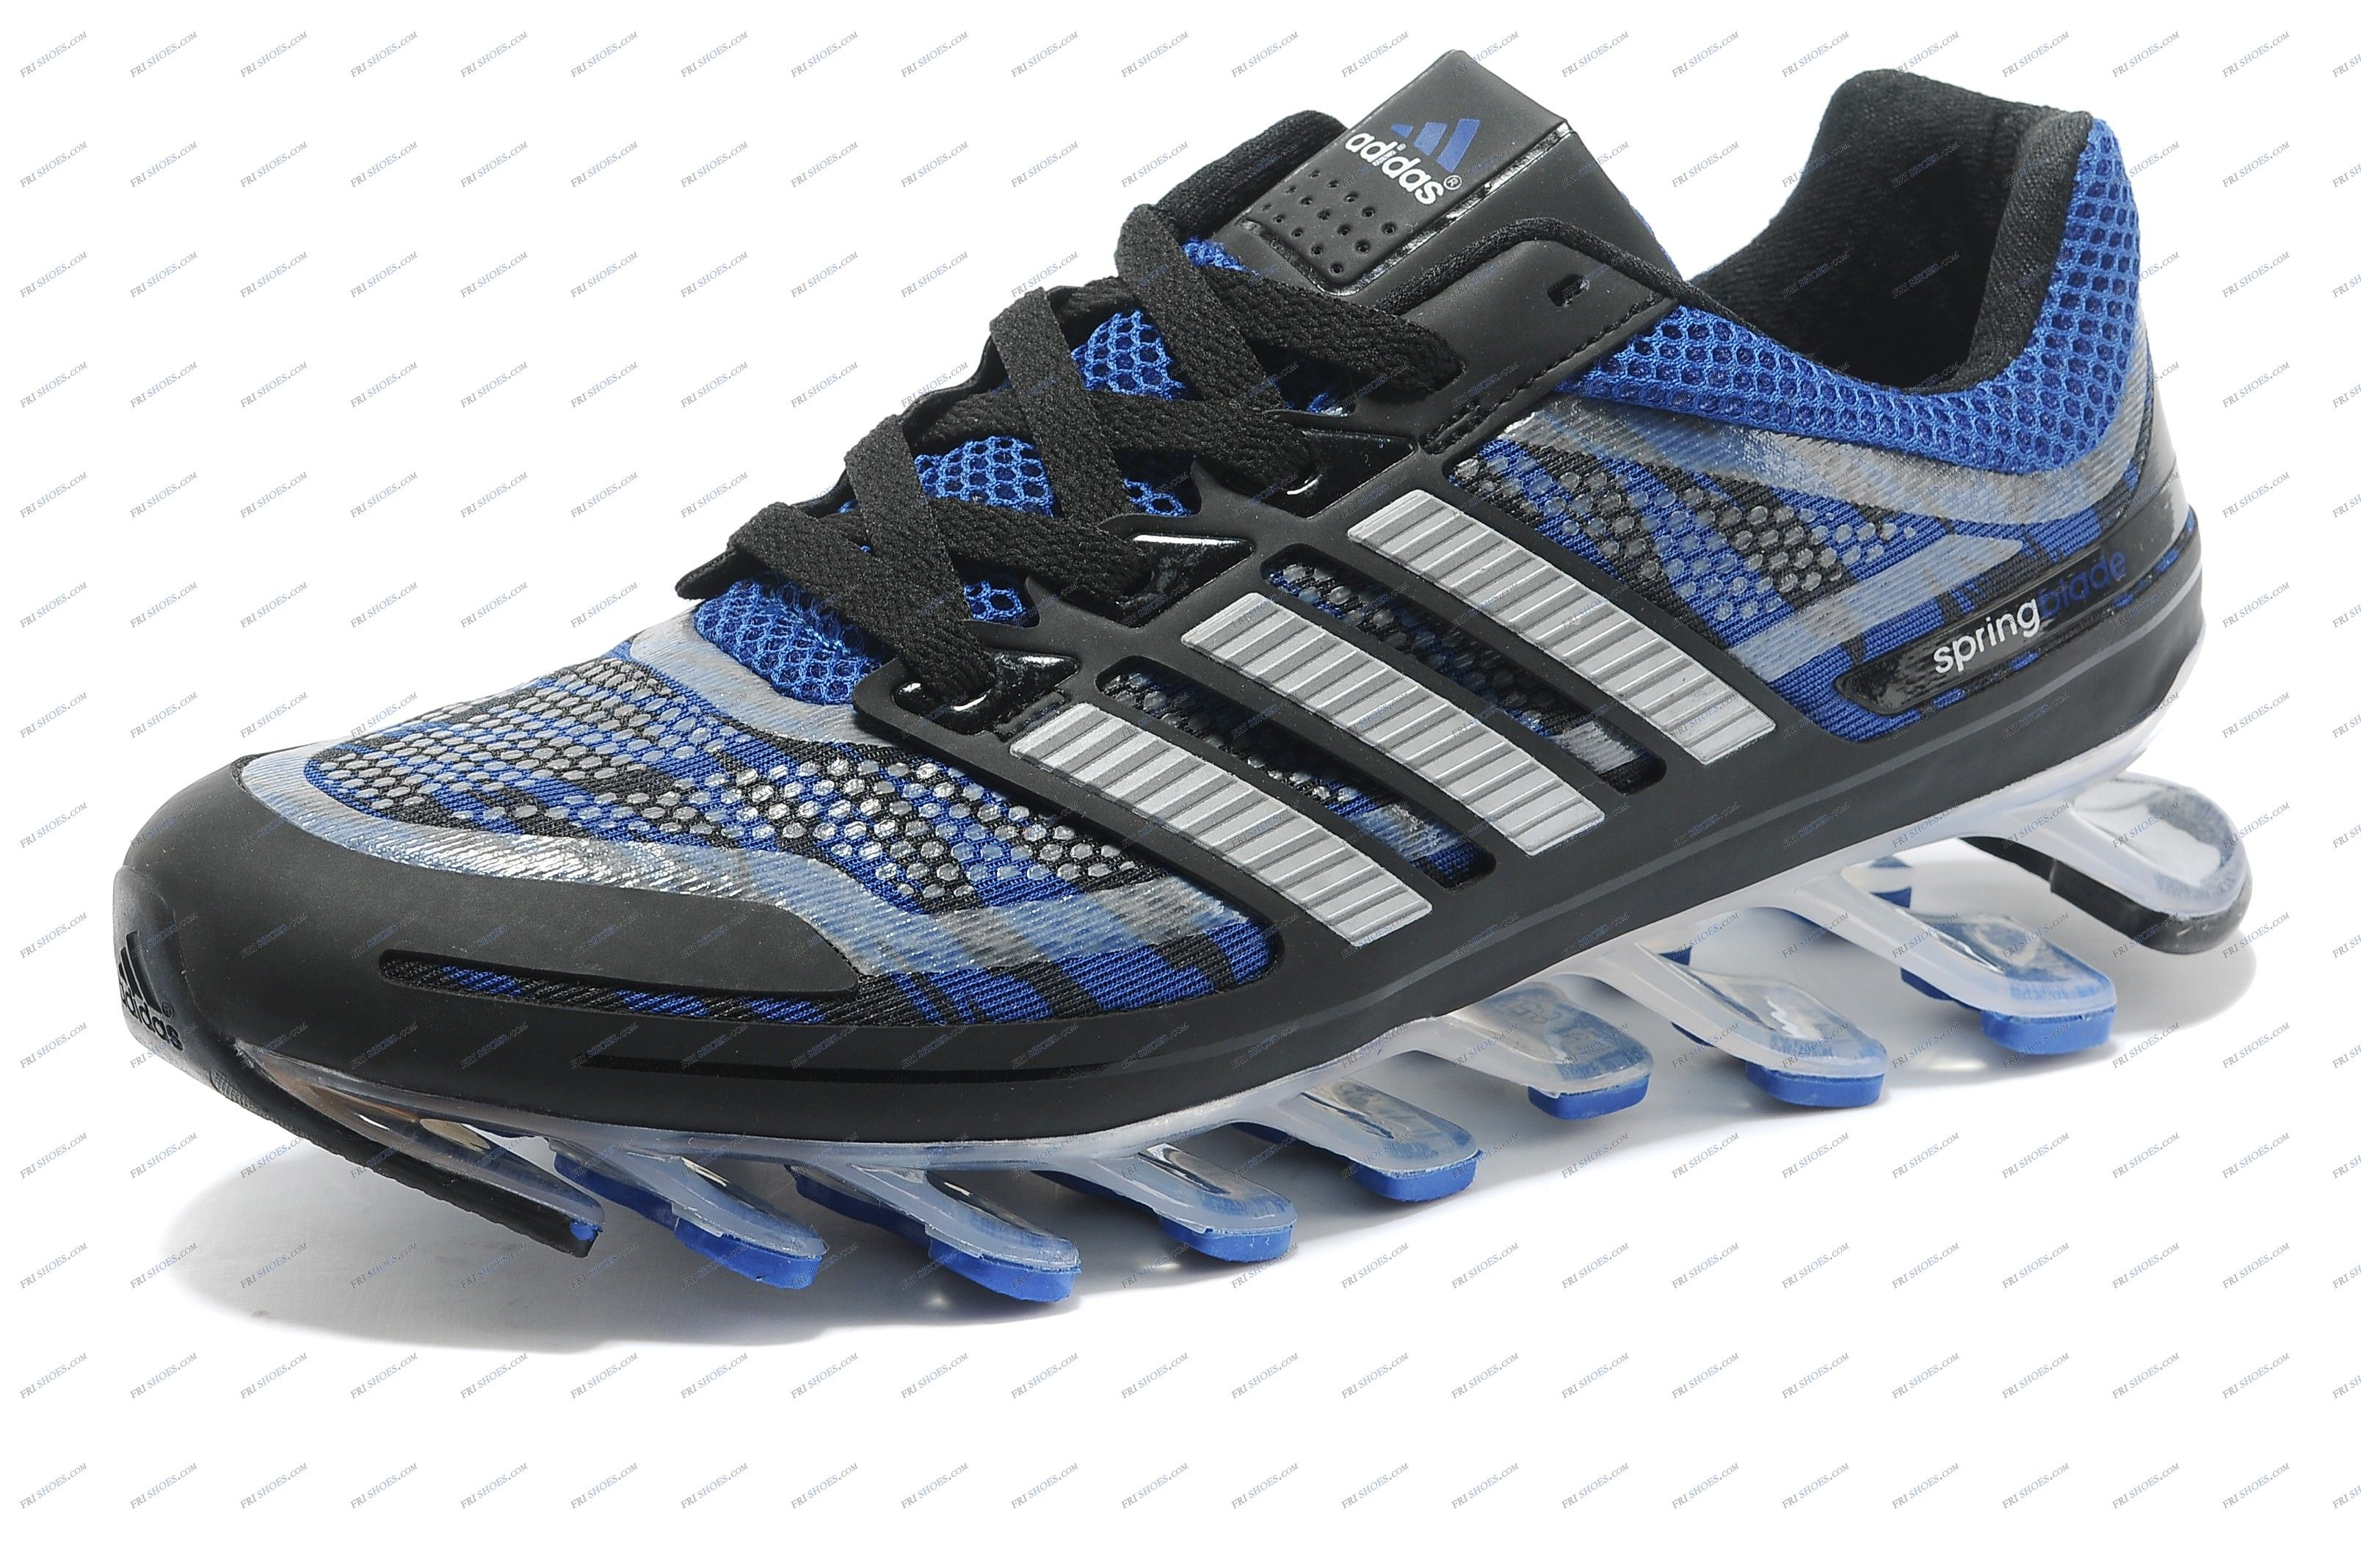 Cheap - Adidas Razor Running Shoes for Men Black-Blue-Silver